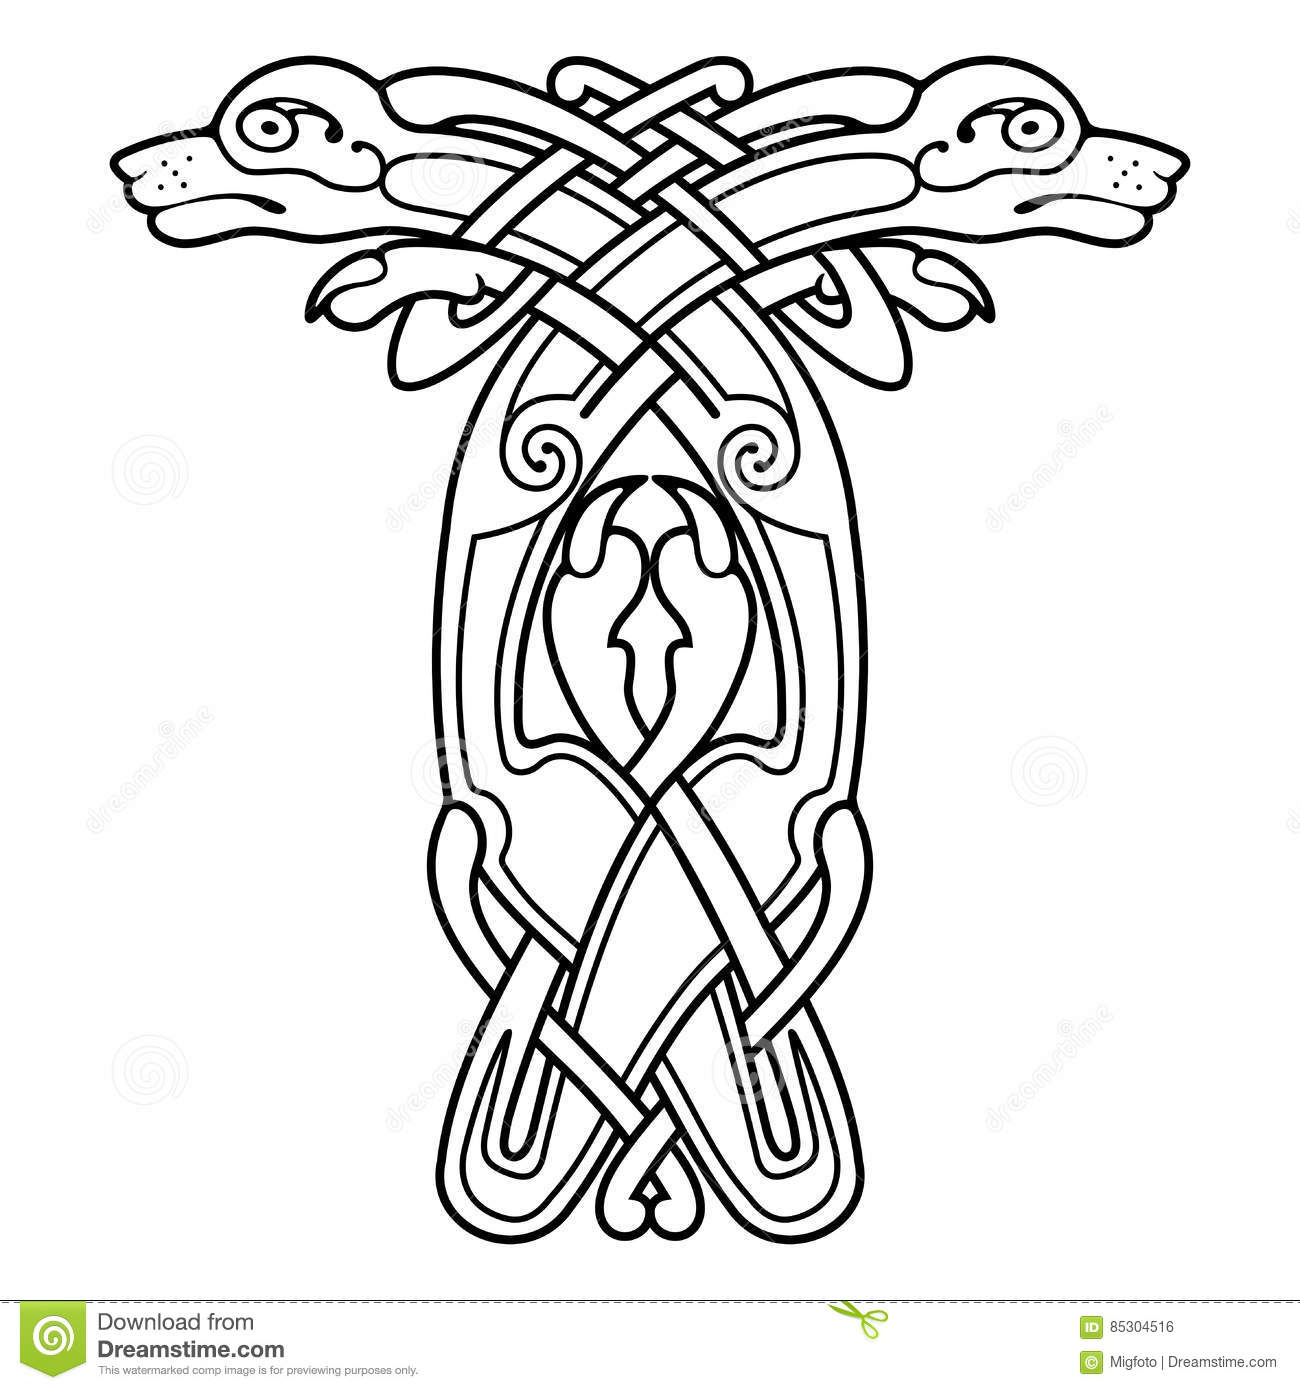 celtic drawings celtic national drawing stock vector illustration of drawings celtic